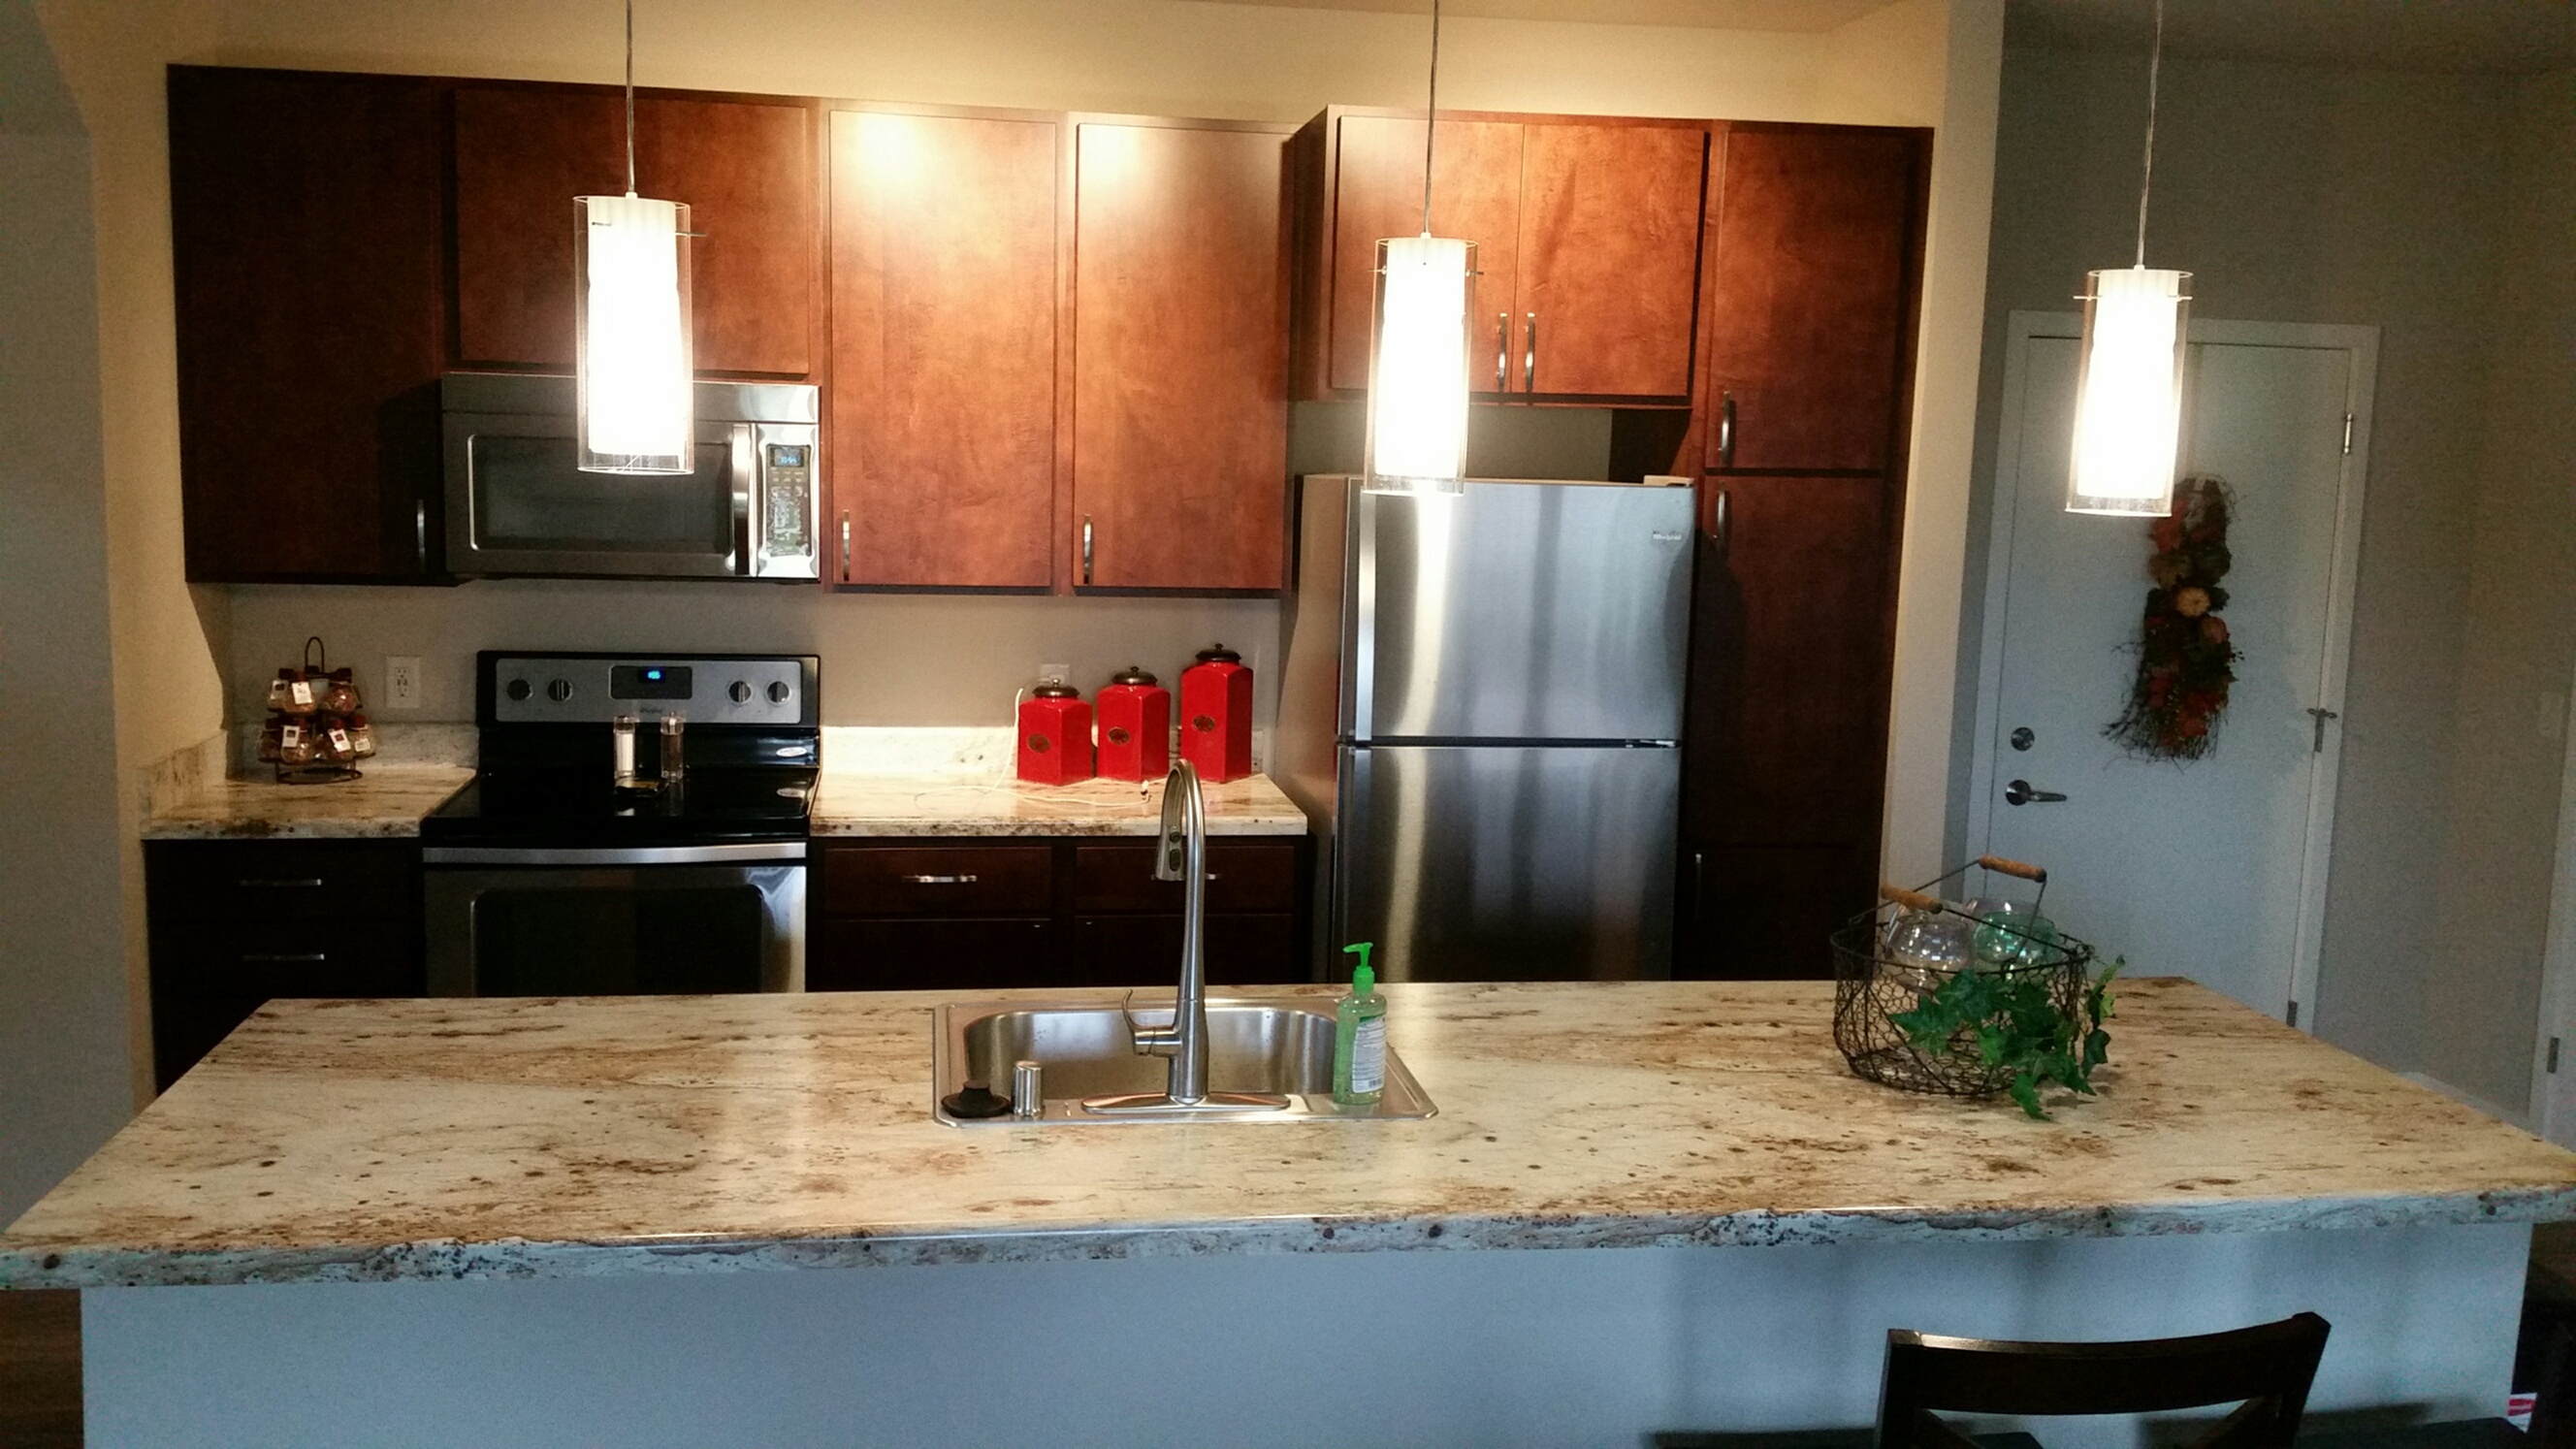 High Bluff Townhomes image 1